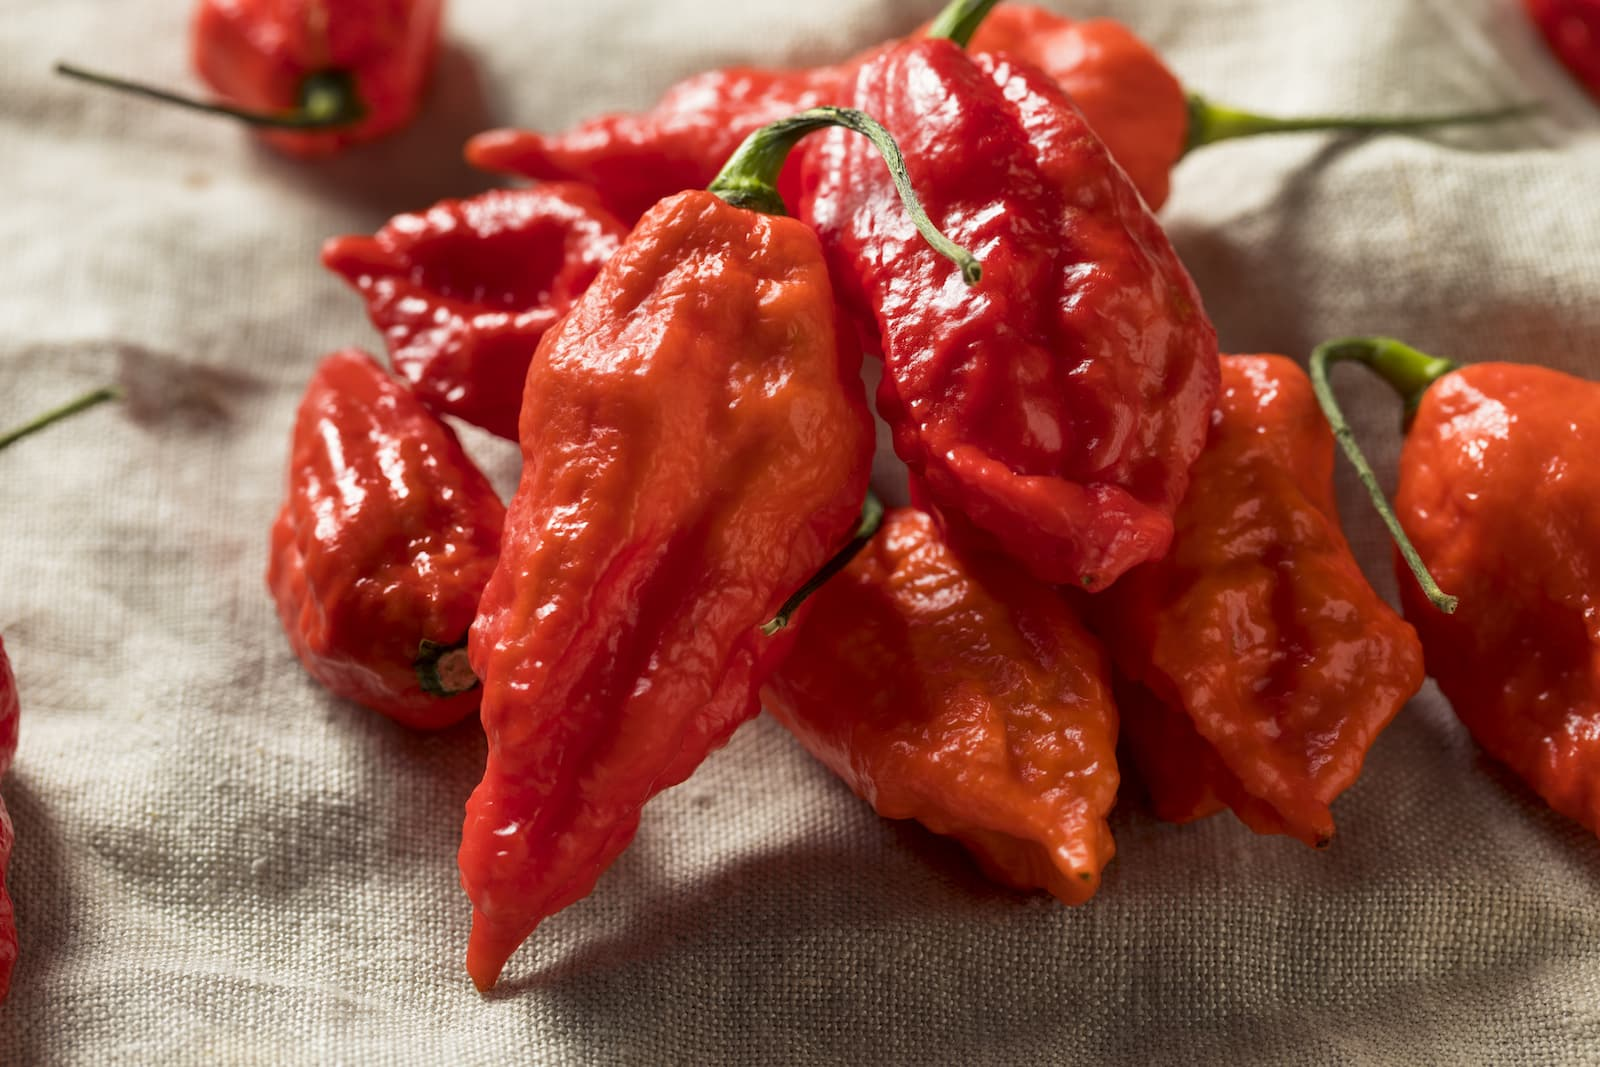 Buy Ghost Pepper Powder – Fruity, Citrusy, Super-Hot